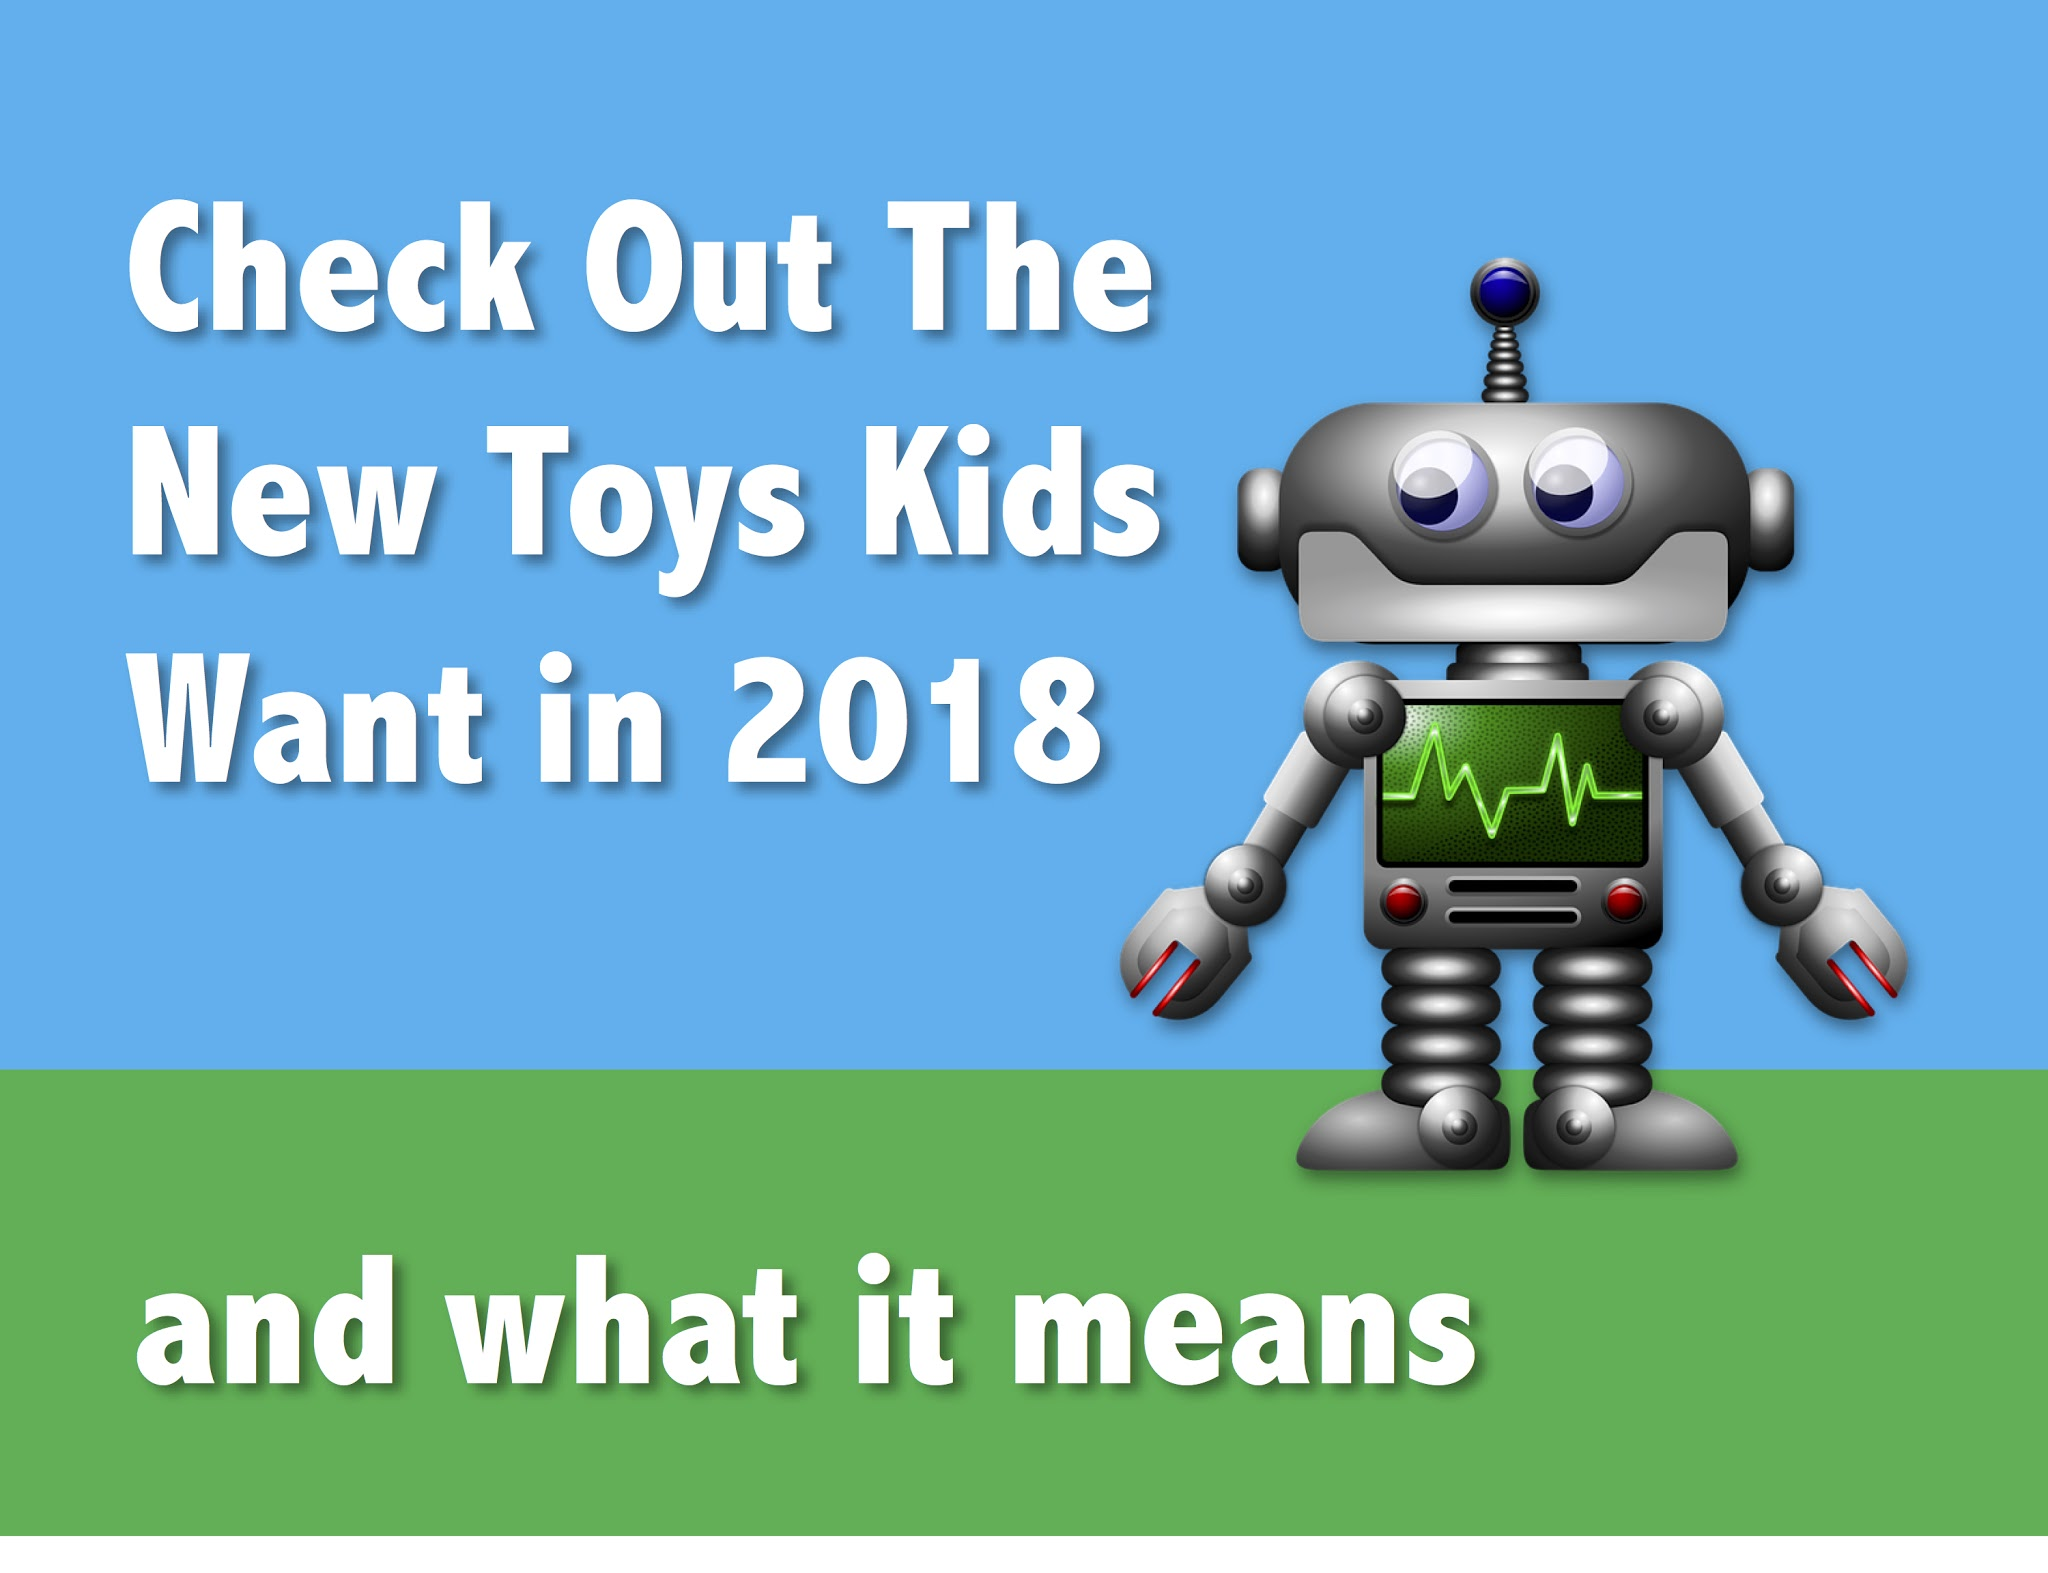 Check Out The New Toys Kids Want In 2018 And What It Means